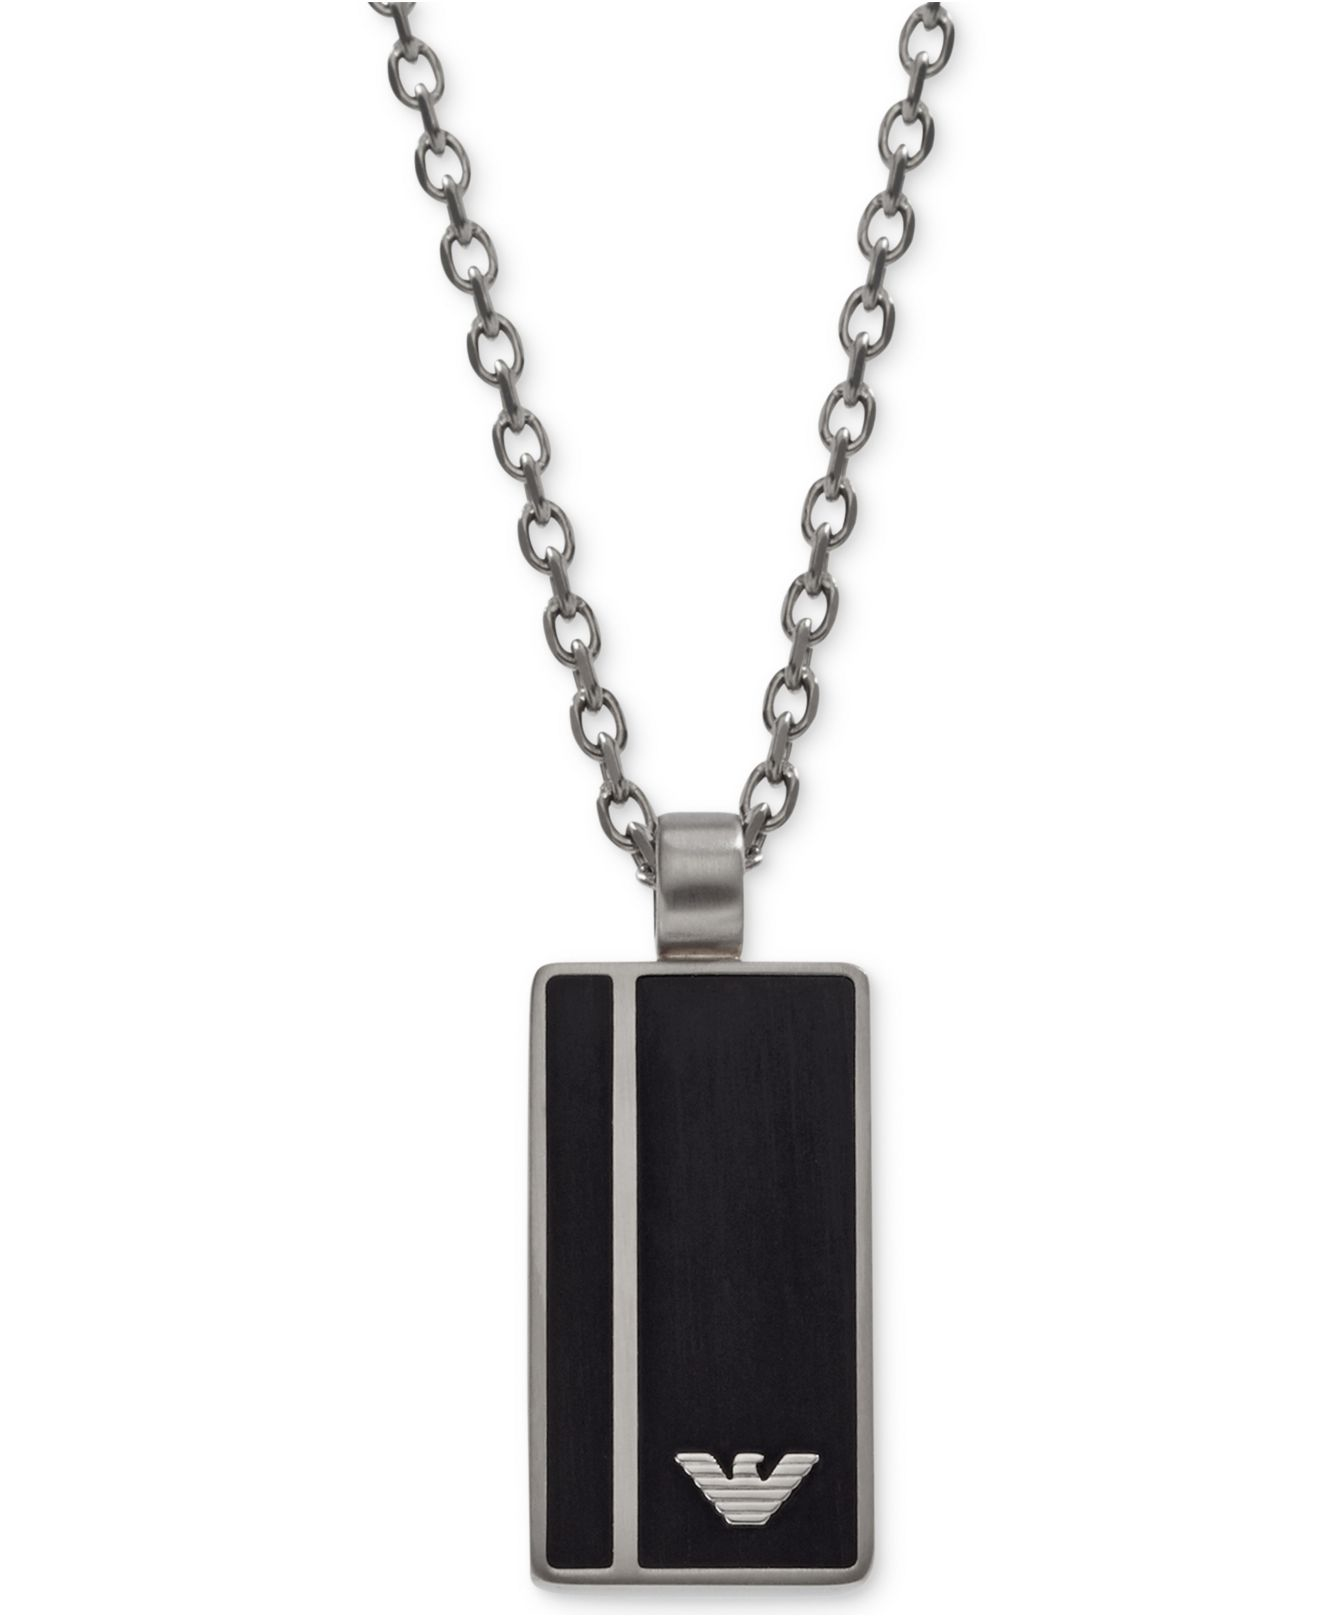 emporio armani men 39 s stainless steel black dog tag. Black Bedroom Furniture Sets. Home Design Ideas